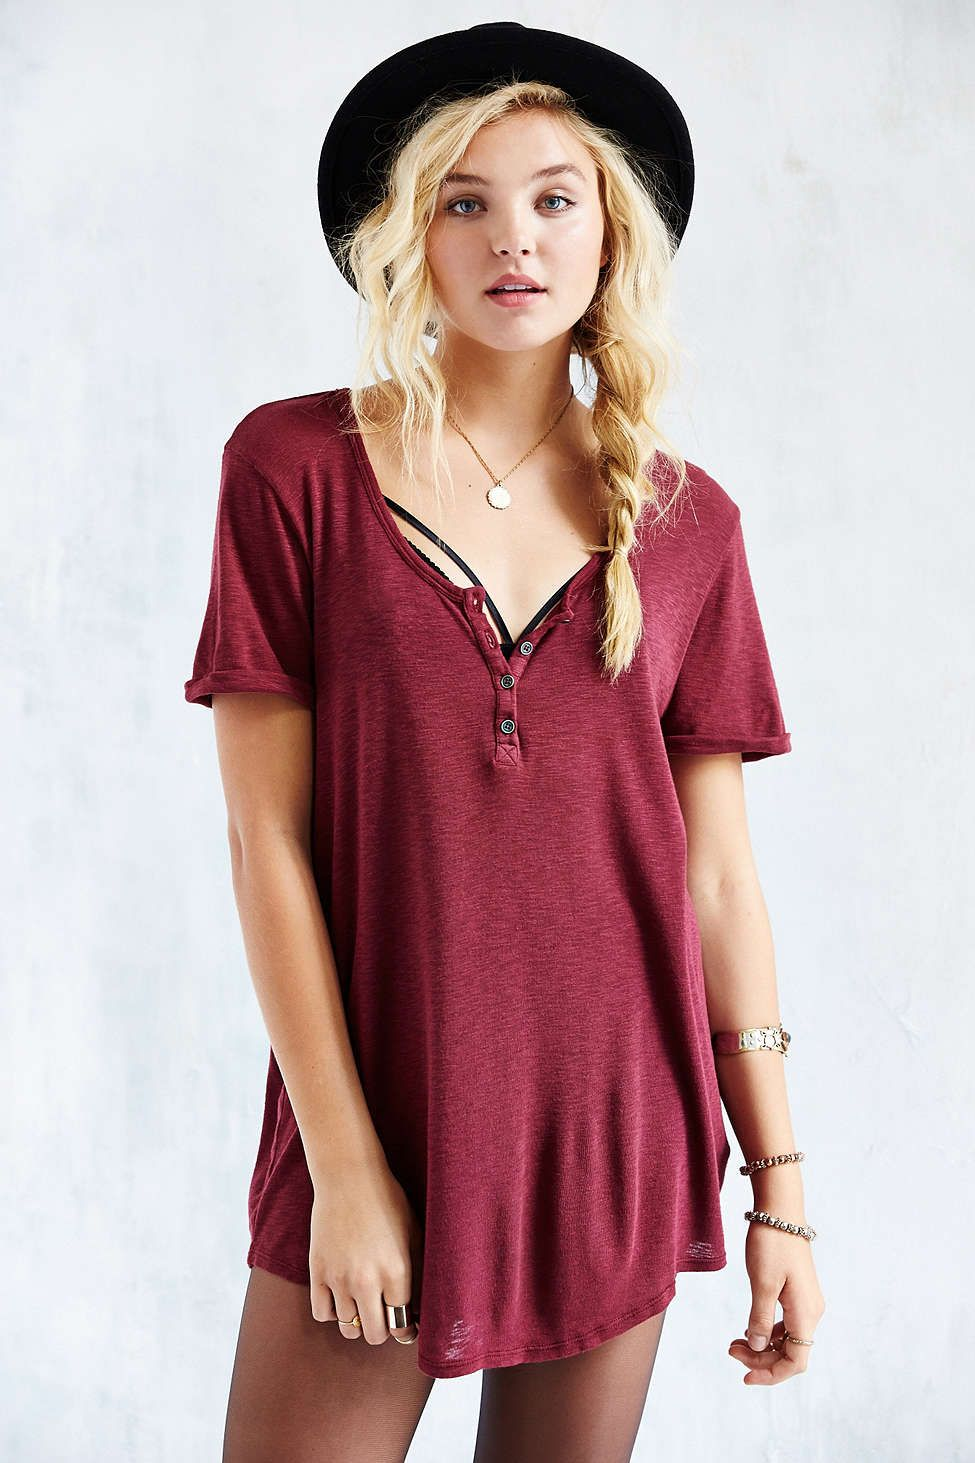 2a28ff8ca9c5 Truly Madly Deeply Henley Tunic Top - Urban Outfitters   Maroon ...